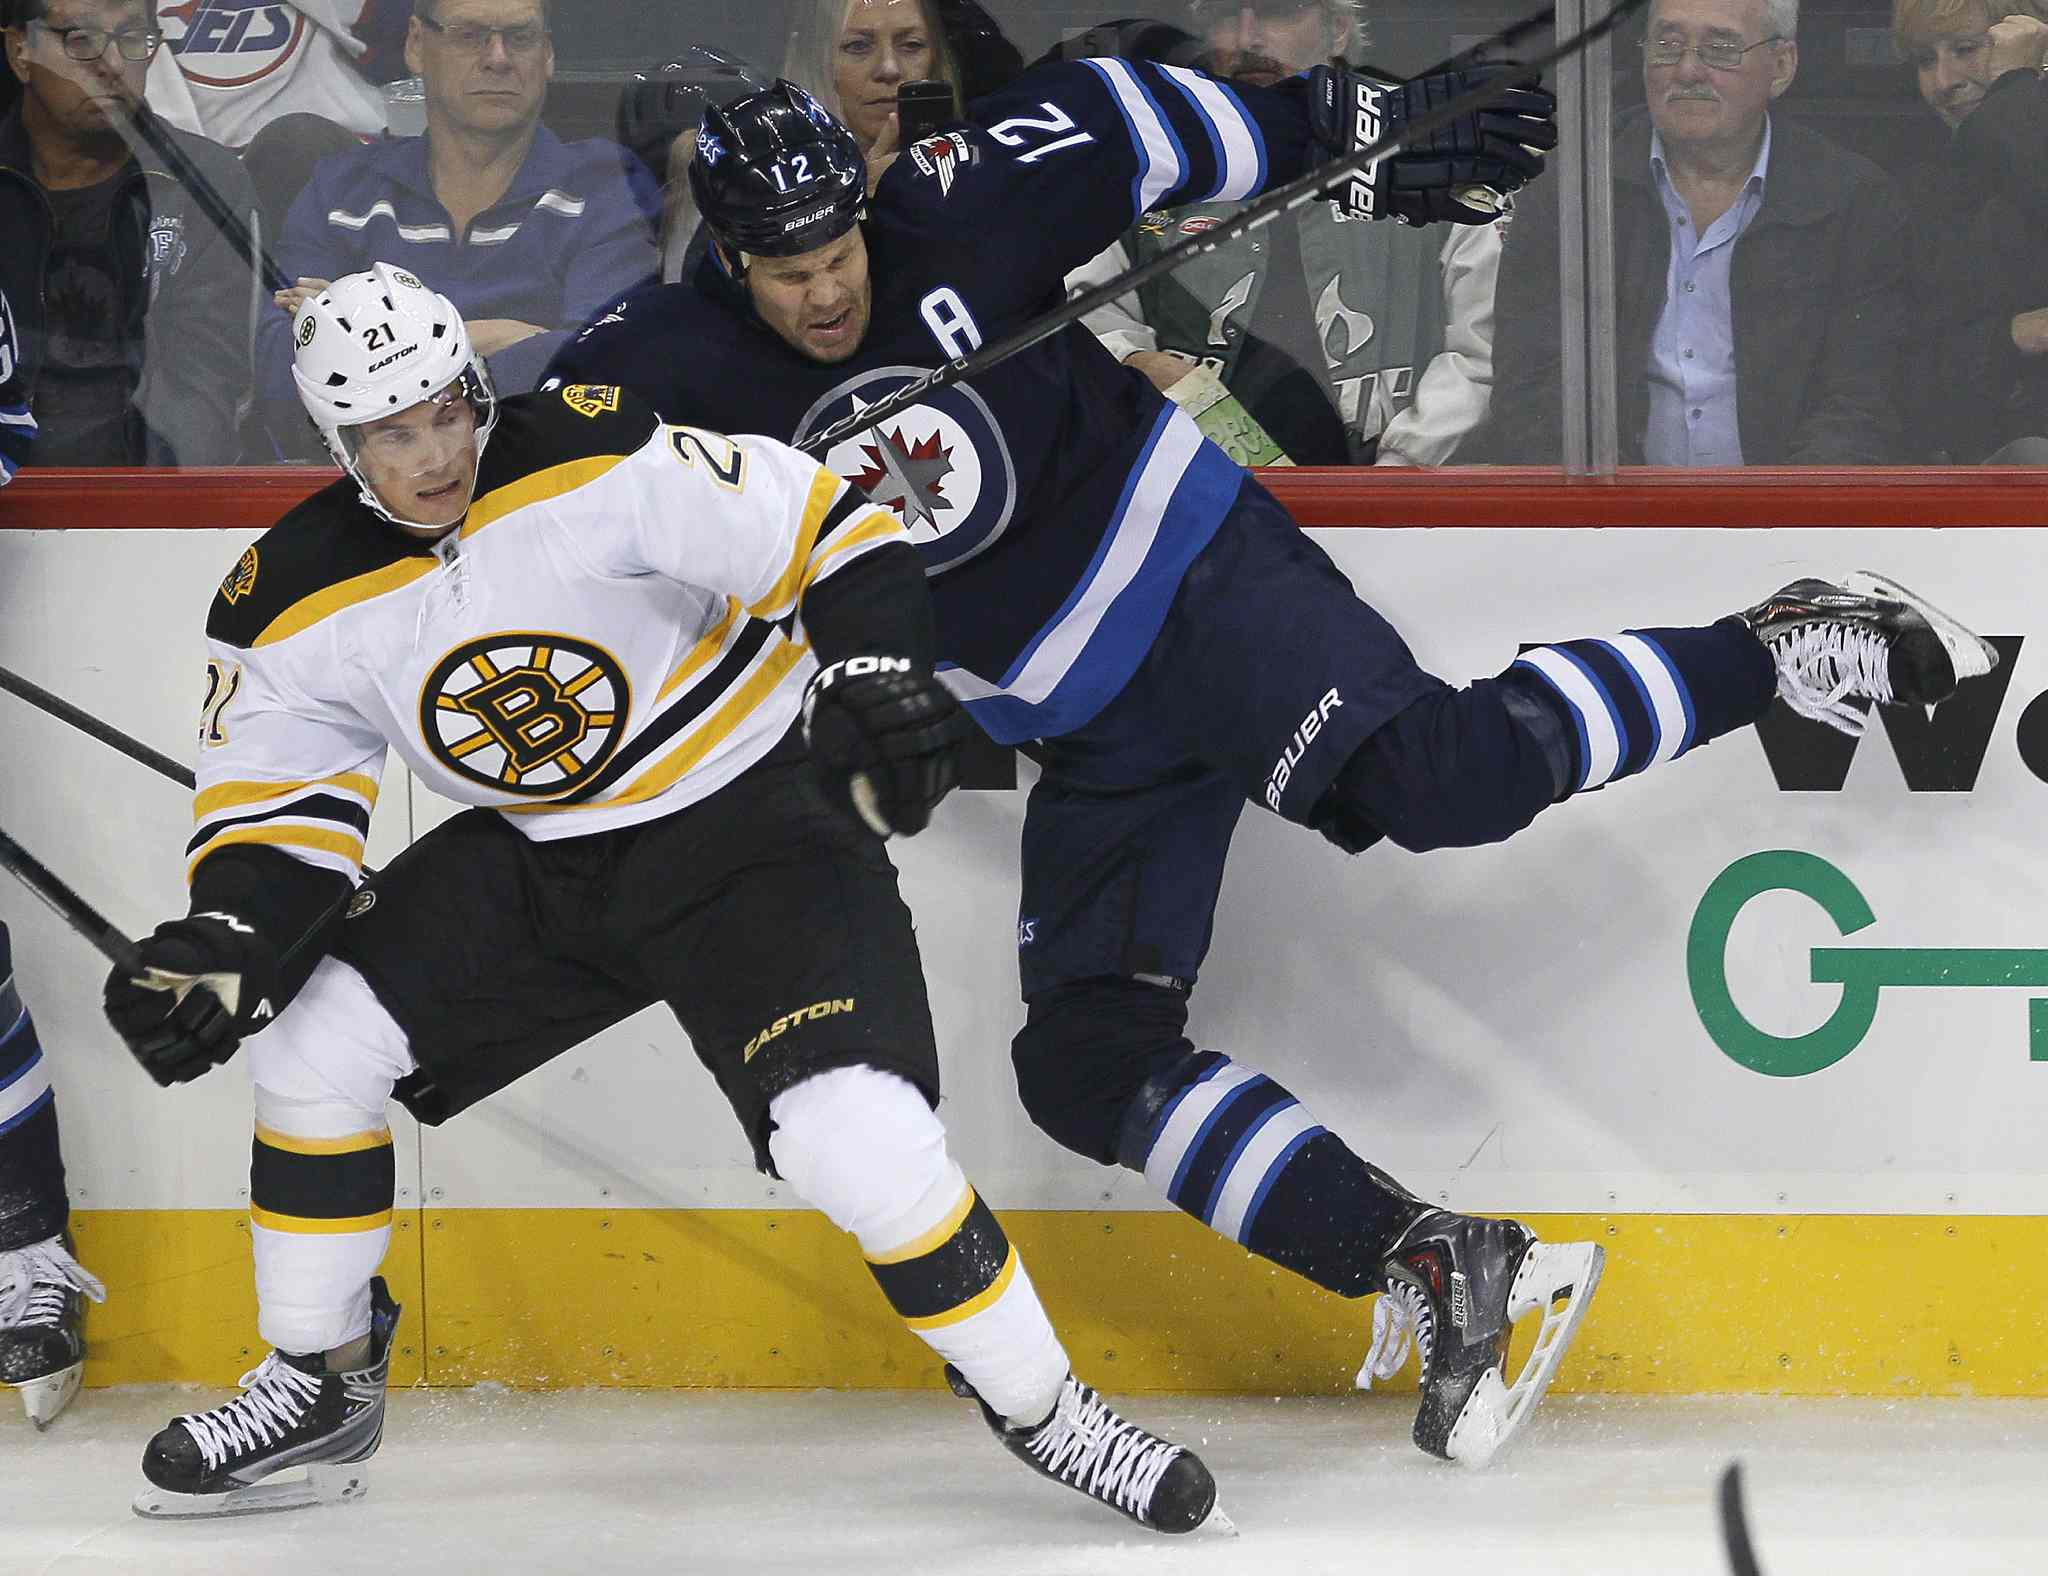 Boston Bruins' Loui Eriksson (left) takes out Winnipeg Jets' Olli Jokinen during the first period.